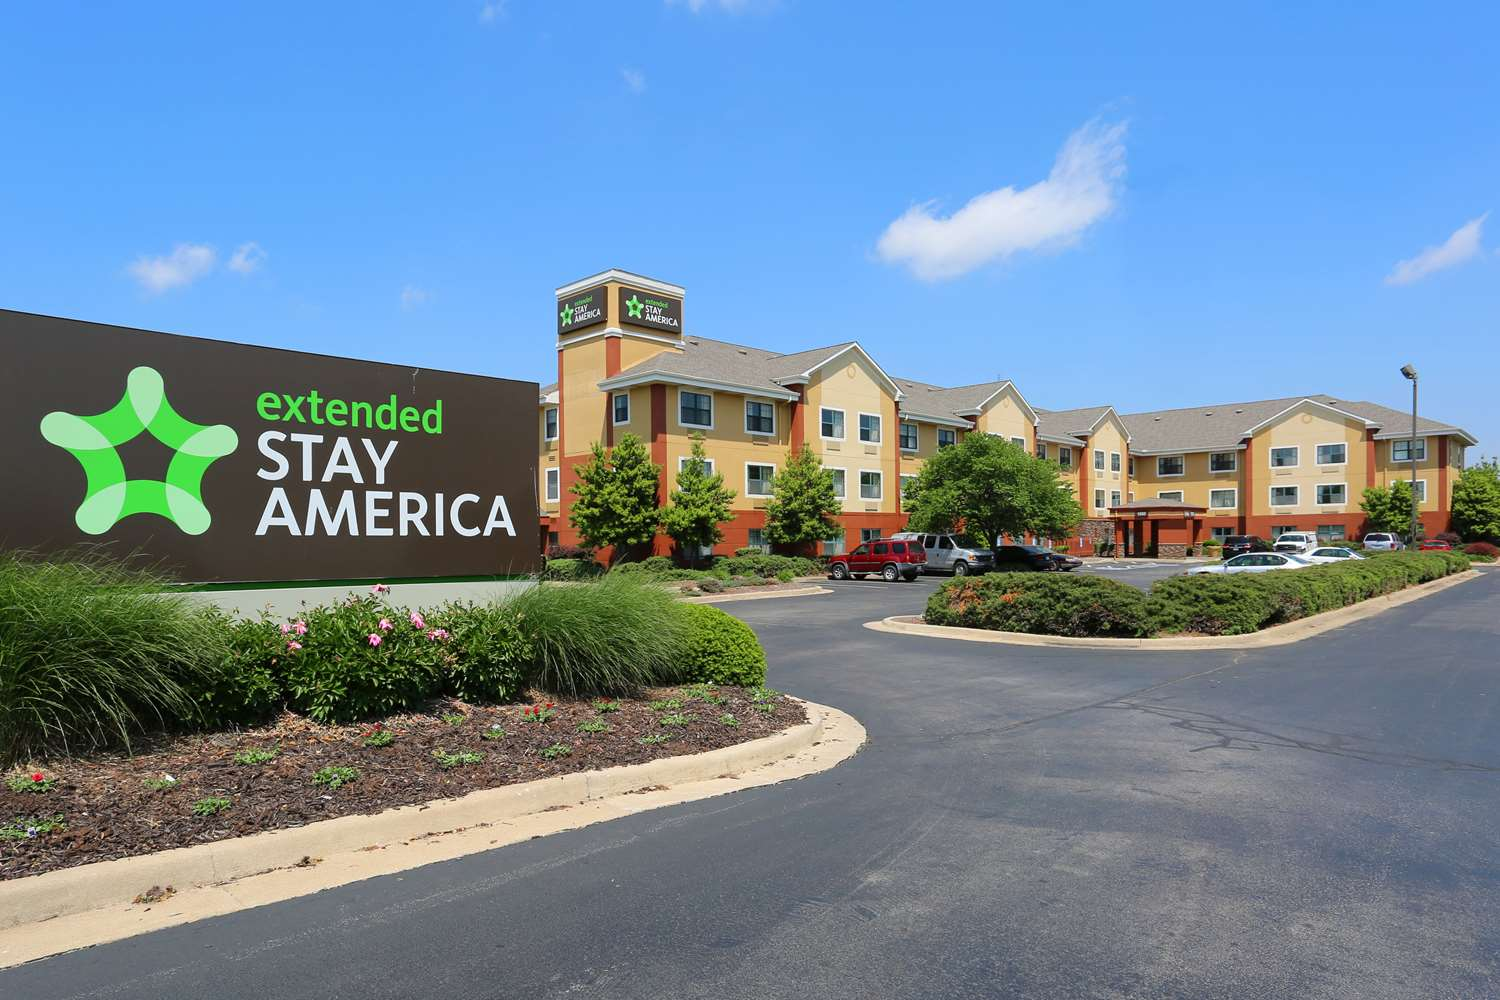 Extended Stay America Hotel Springfield South